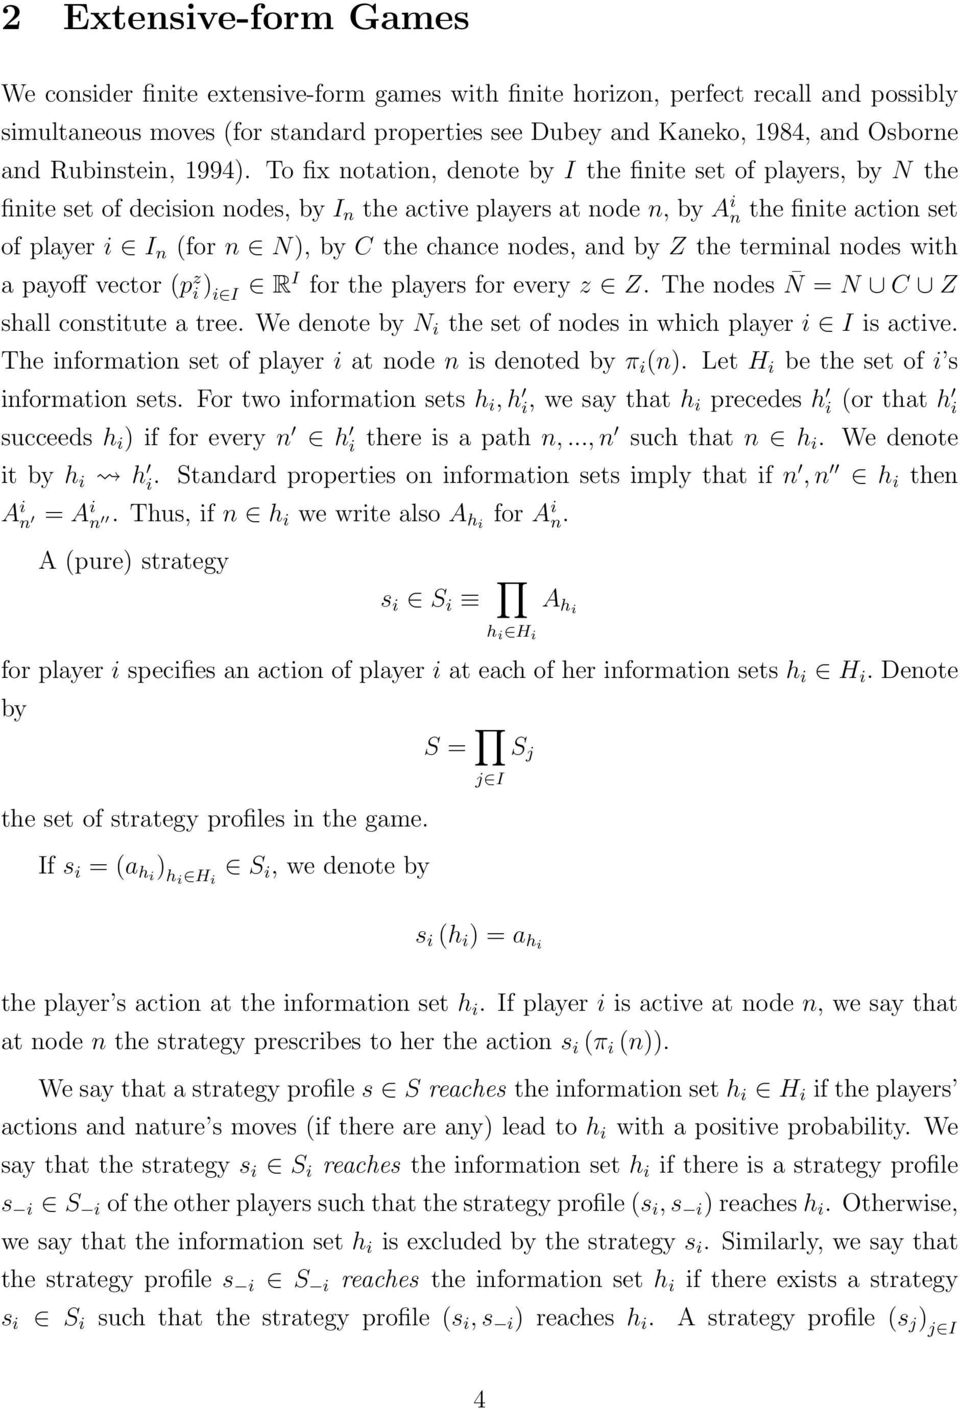 To fix notation, denote by I the finite set of players, by N the finite set of decision nodes, by I n the active players at node n, by A i n the finite action set of player i I n (for n N), by C the